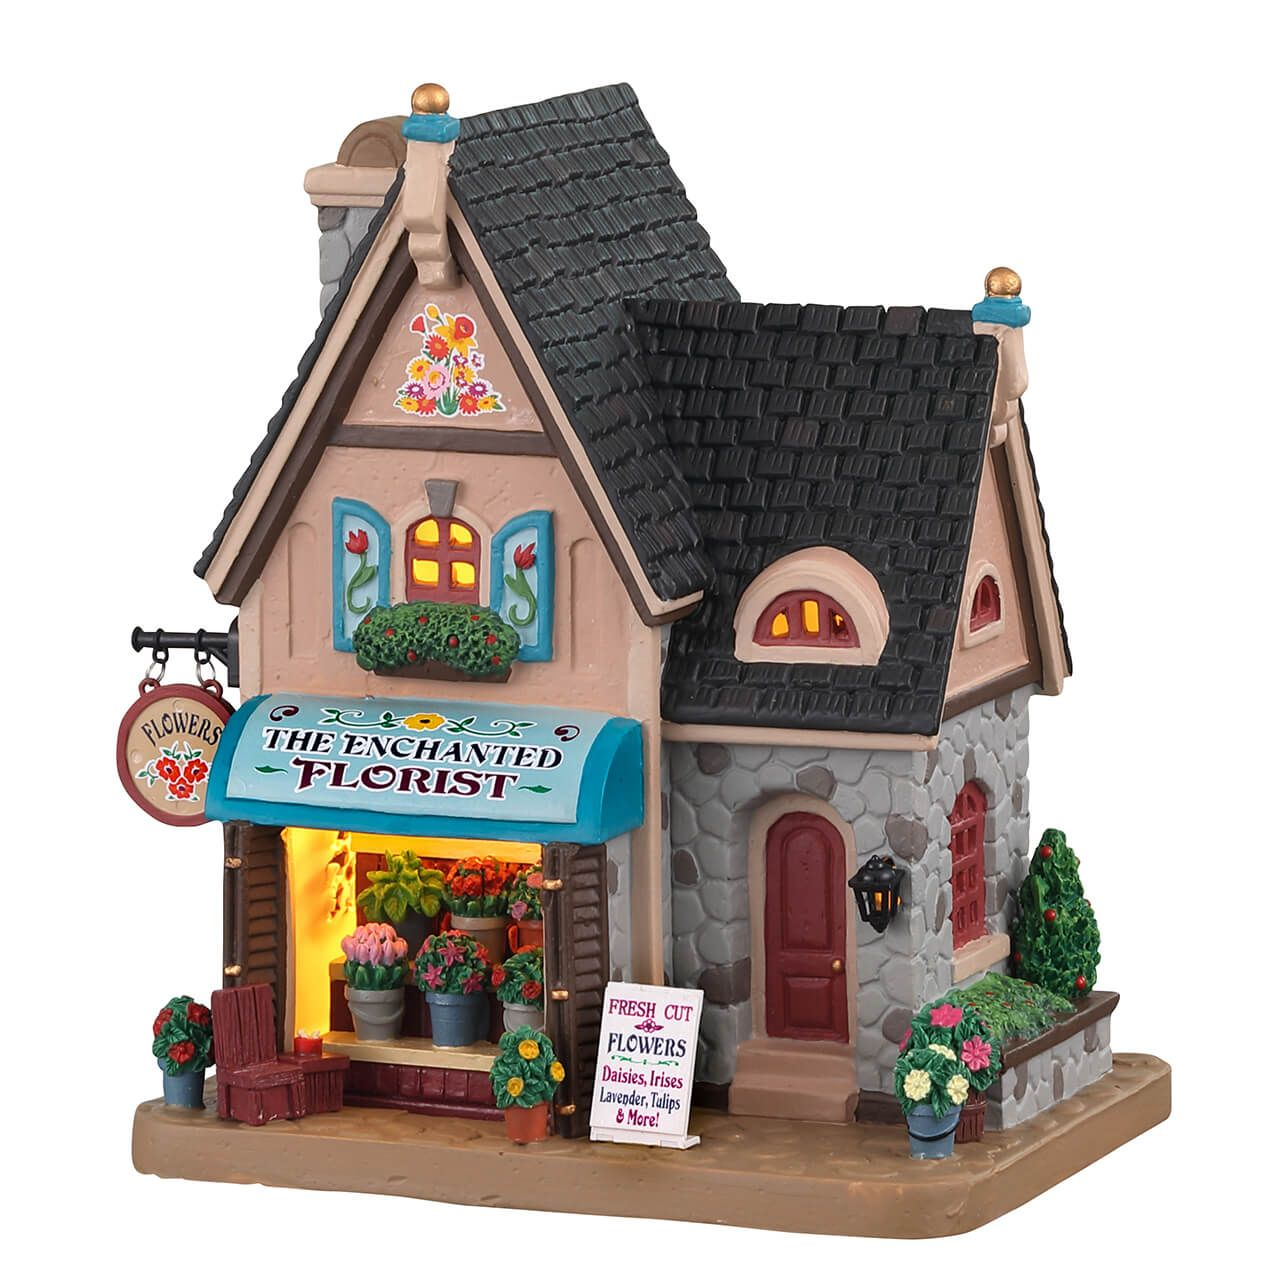 Enchanted Christmas Village 2020 Lemax The Enchanted Florist in 2020 | Enchanted florist, Christmas